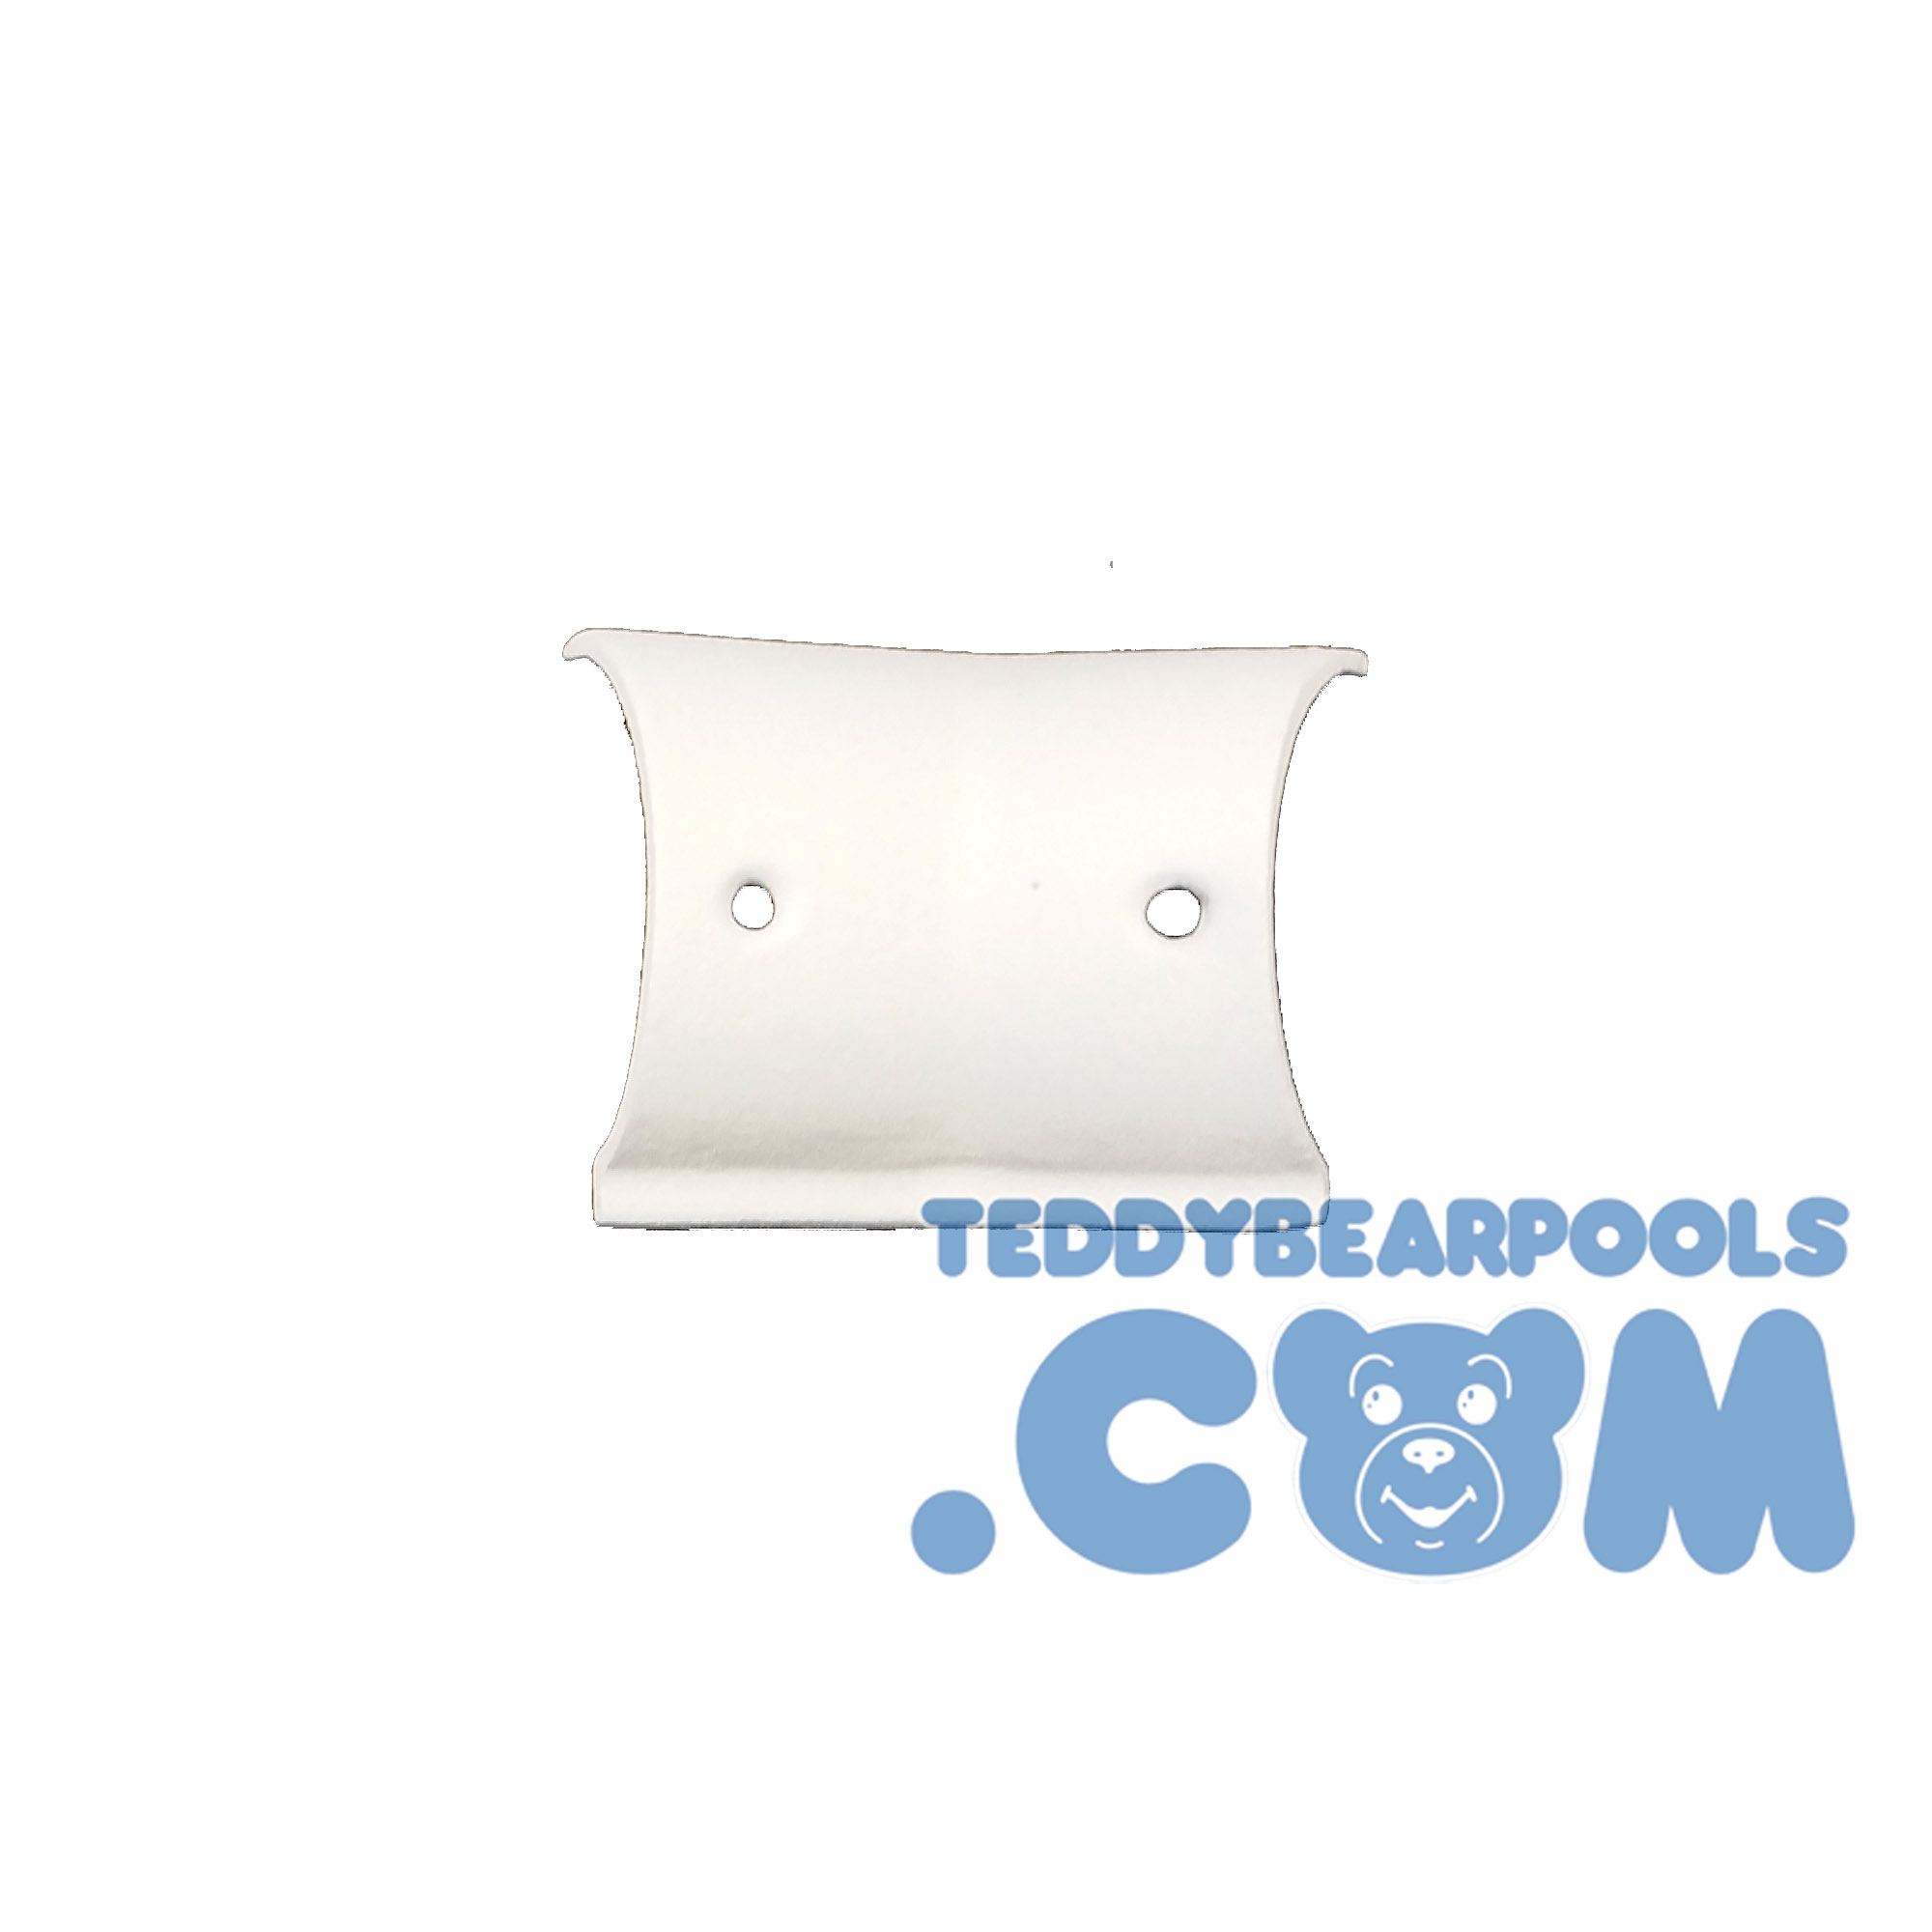 Corner Coping For Ew Ig T1250 24 Teddy Bear Pools And Spas